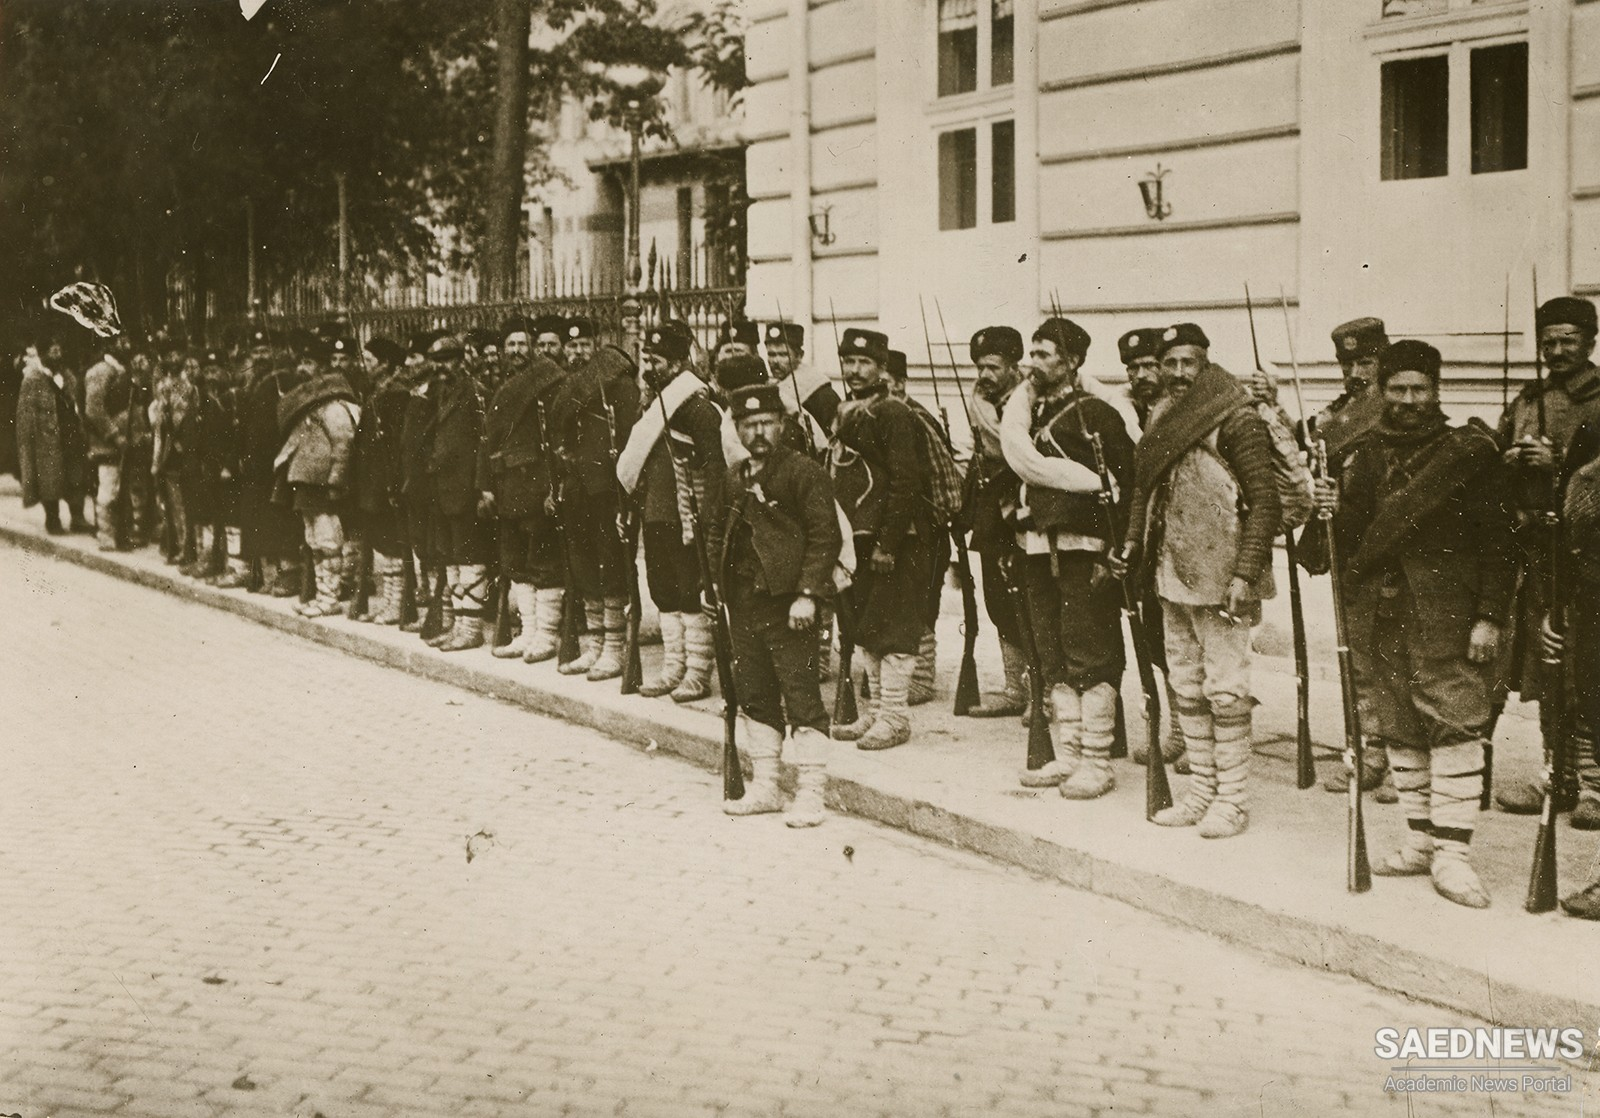 The Balkan Crises in Early Twentieth Century and the Aftermath